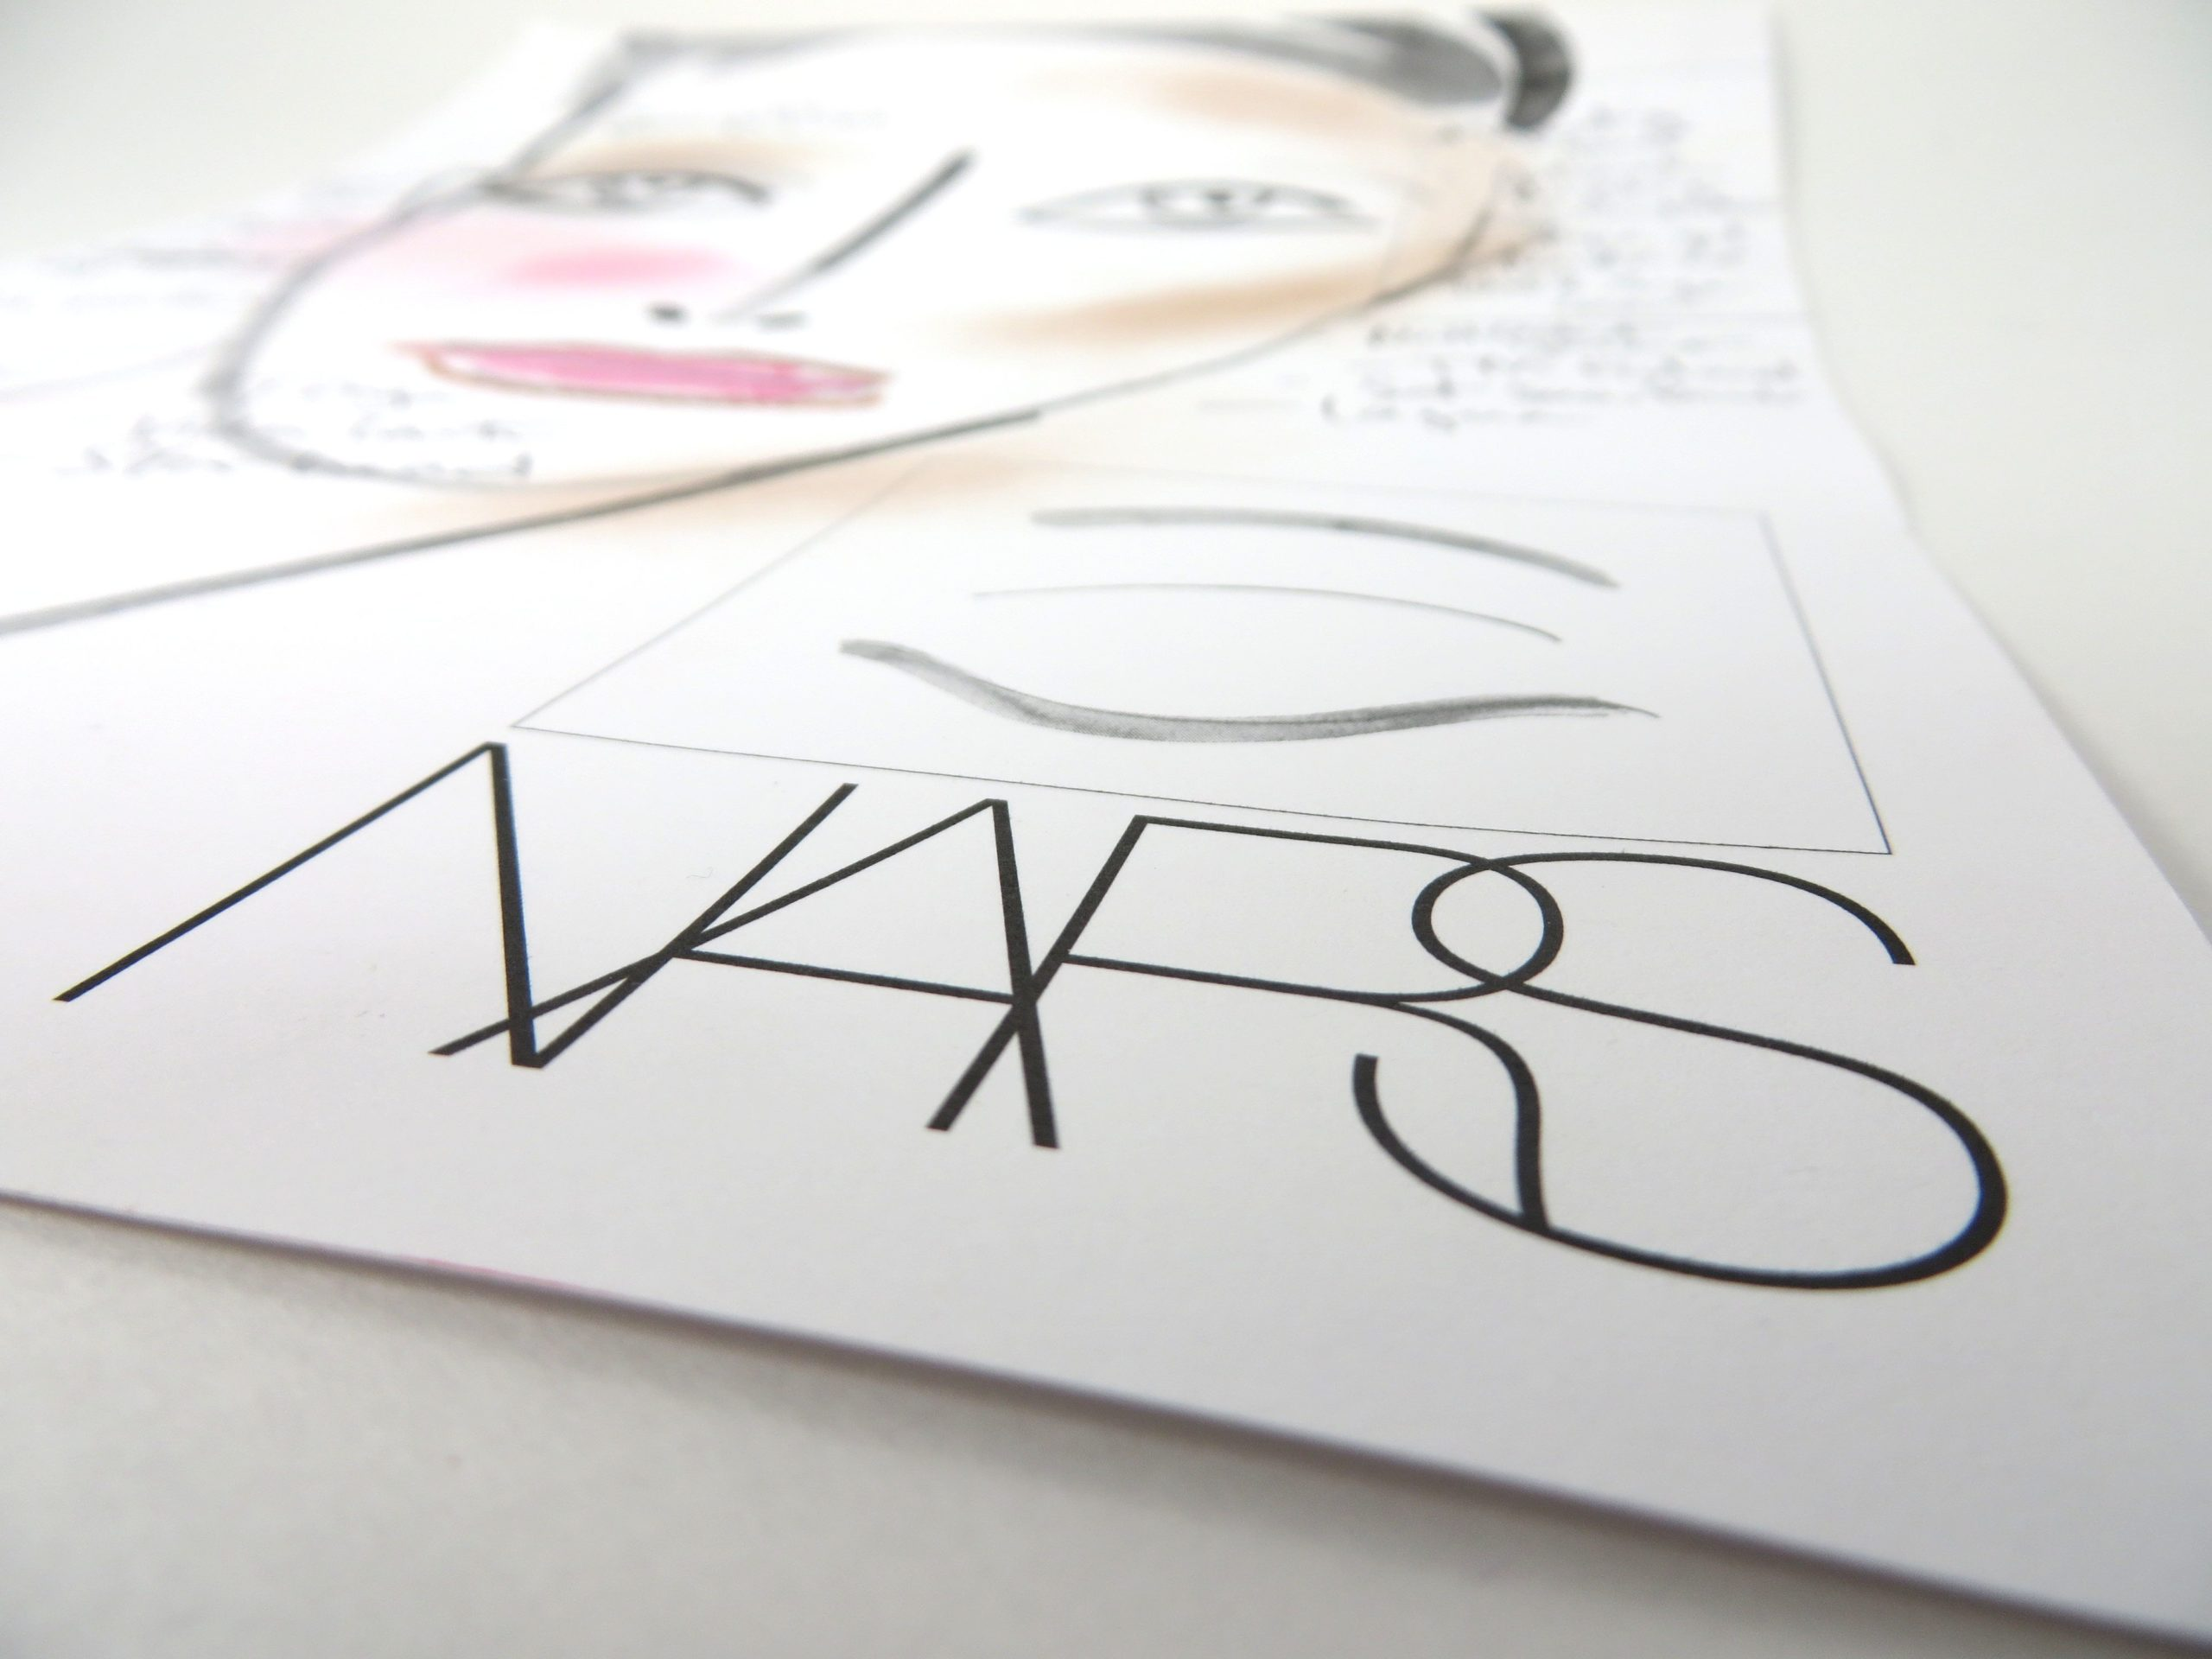 An afternoon with NARS